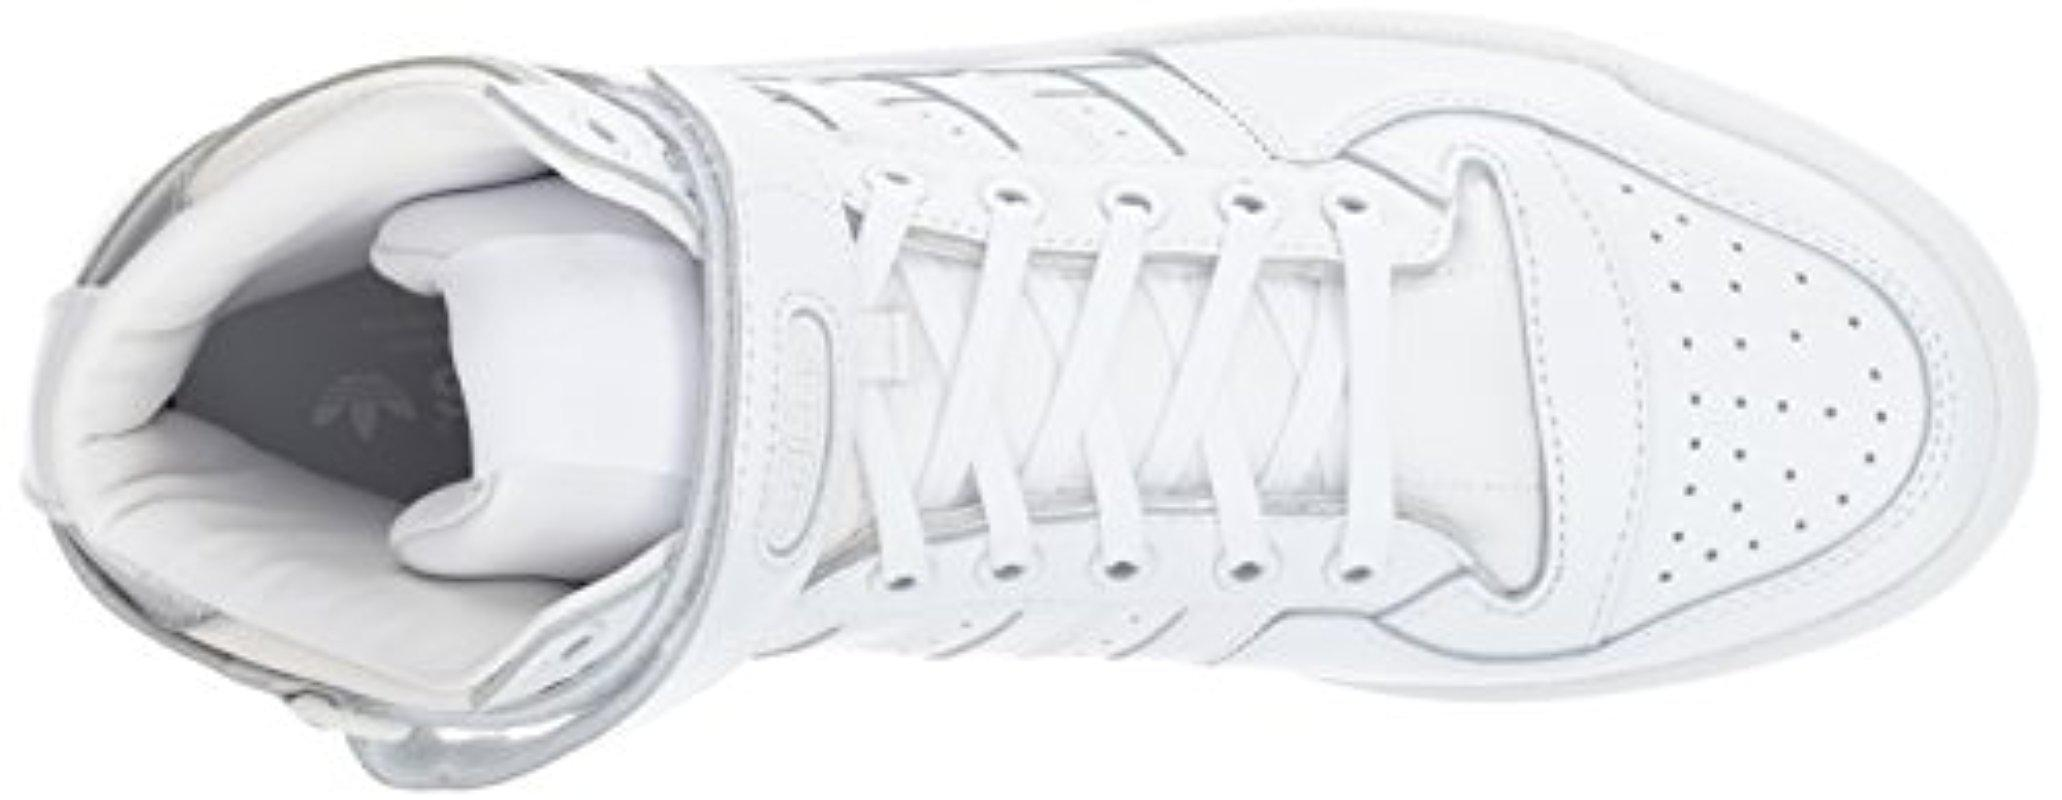 b9d4d429b4e5 ... coupon code for lyst adidas originals shoes forum mid refined sneakers  white 5eddf bbc9b